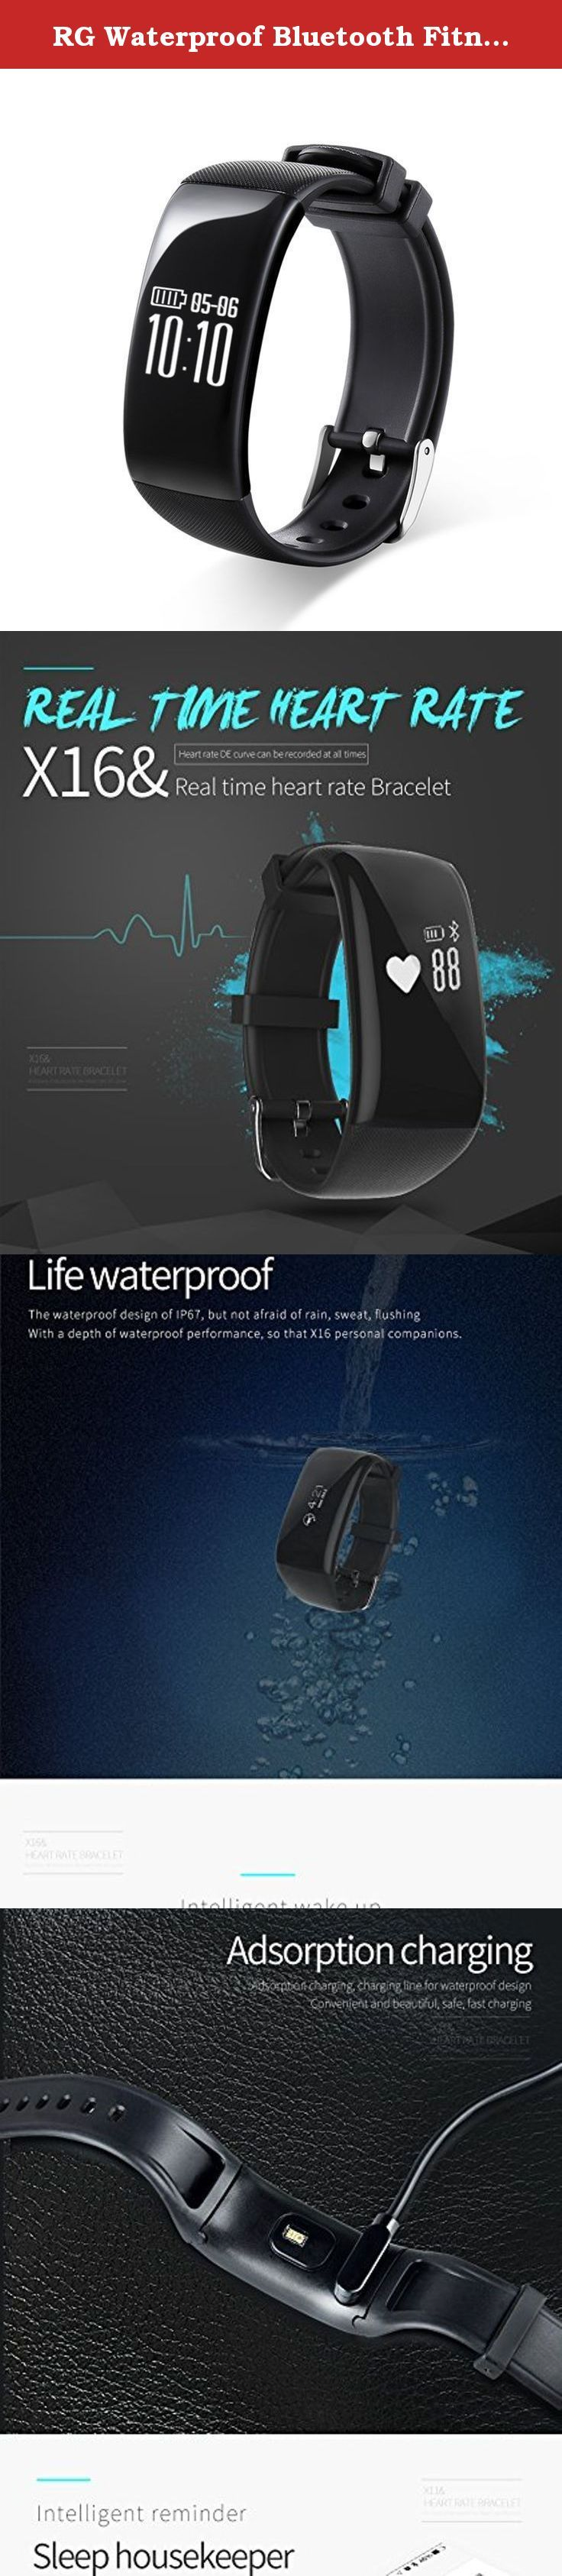 """RG Waterproof Bluetooth Fitness Tracker Smartband Bracelet Heart Rate Monitor Wristband Pedometer Step Walking Distance Calorie Counter Smart Watch for iOS Android Smartphone (BlackB). FAQ 1.HOW TO DOWNLOAD APP? Answer: Android -- Please searching """"HPLUS WATCH""""from Google play store and then download the APP IOS -- Please searching """"HPLUS WATCH"""" from APPLE store and then download the APP 2.How to synch with app? Answer: Please connnect your phone with this track X16 via Bluetooth , after…"""